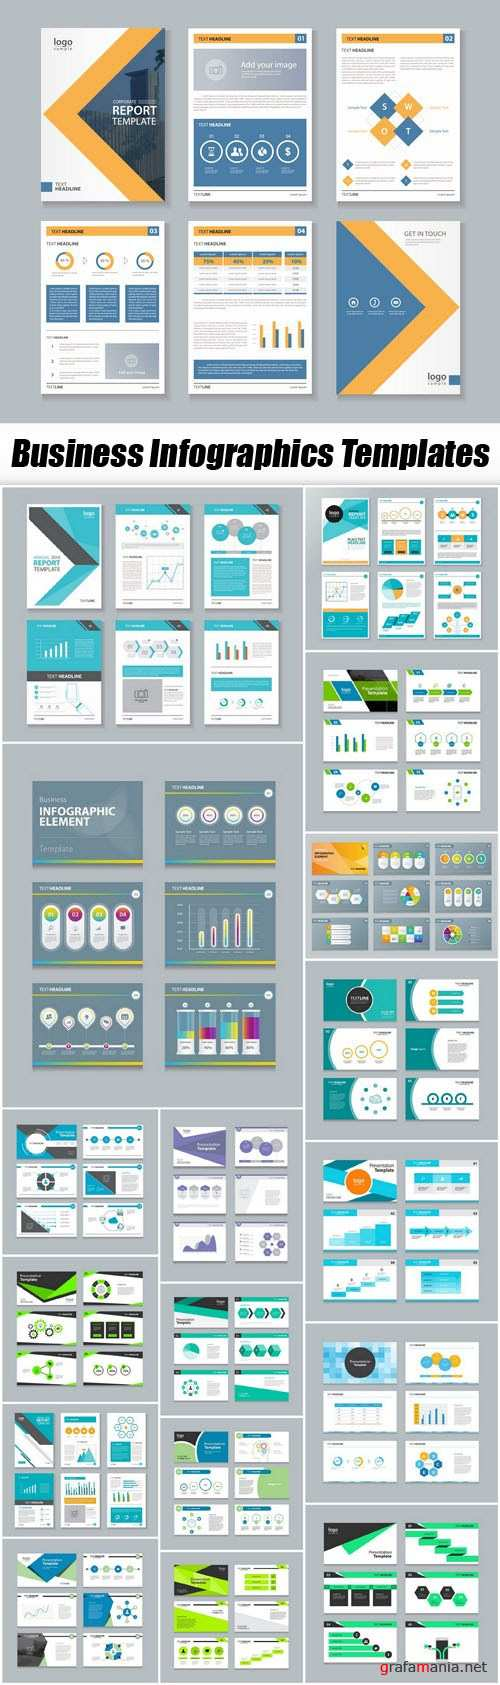 Business Infographics Templates - 20xEPS